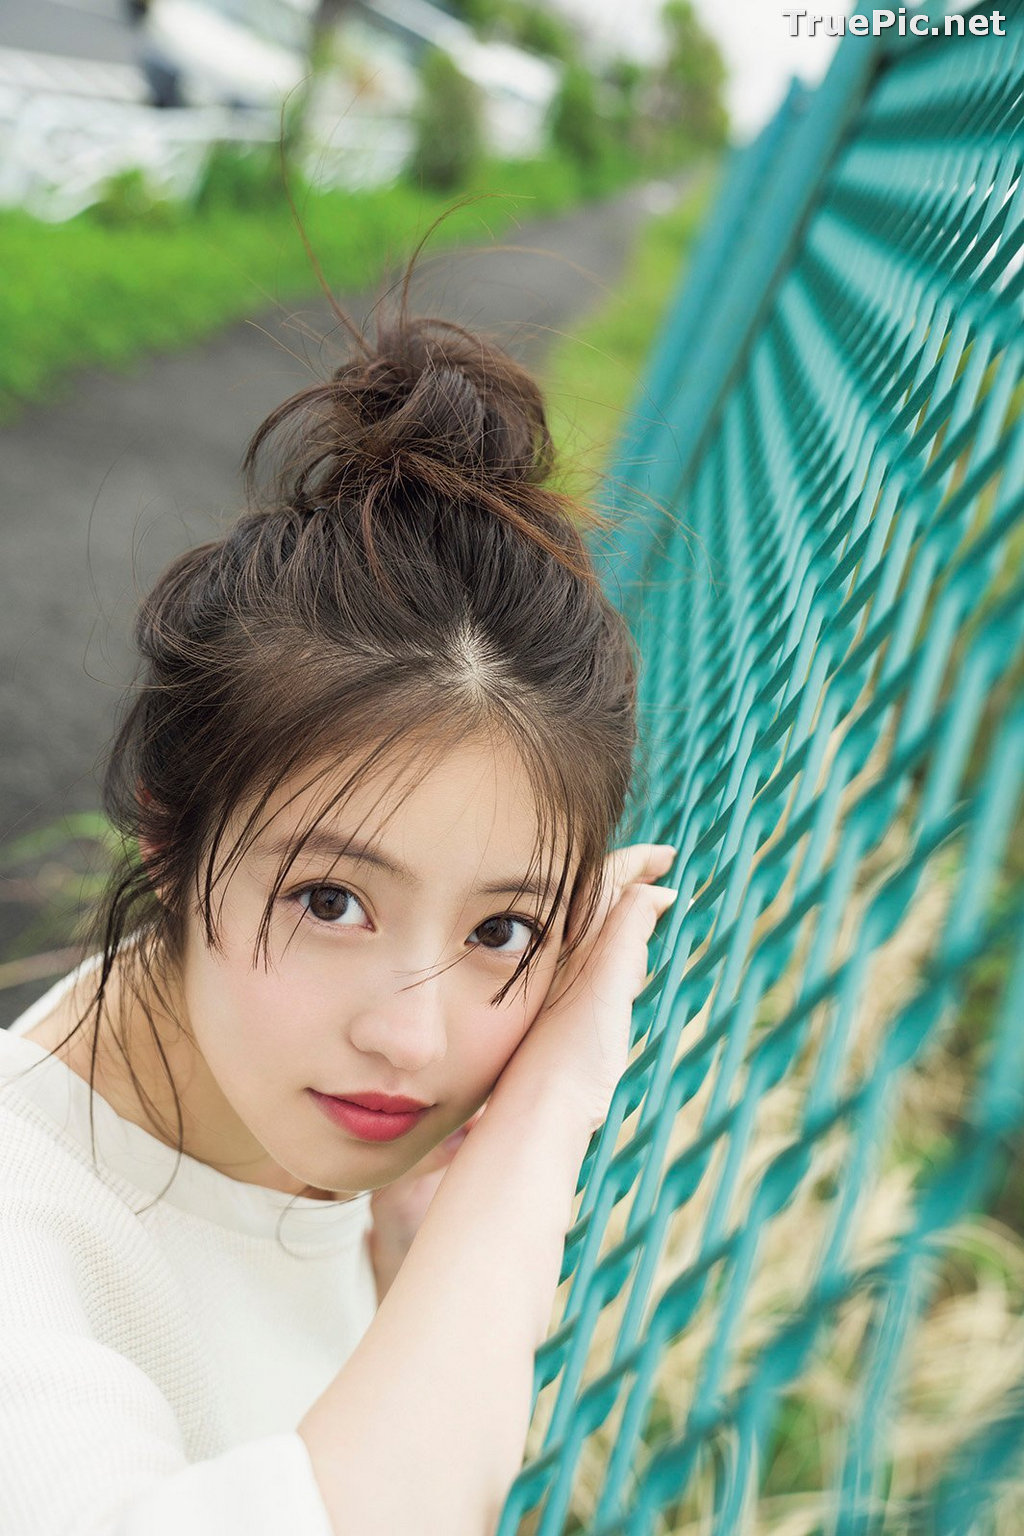 Image Japanese Actress and Model - Mio Imada (今田美櫻) - Sexy Picture Collection 2020 - TruePic.net - Picture-3